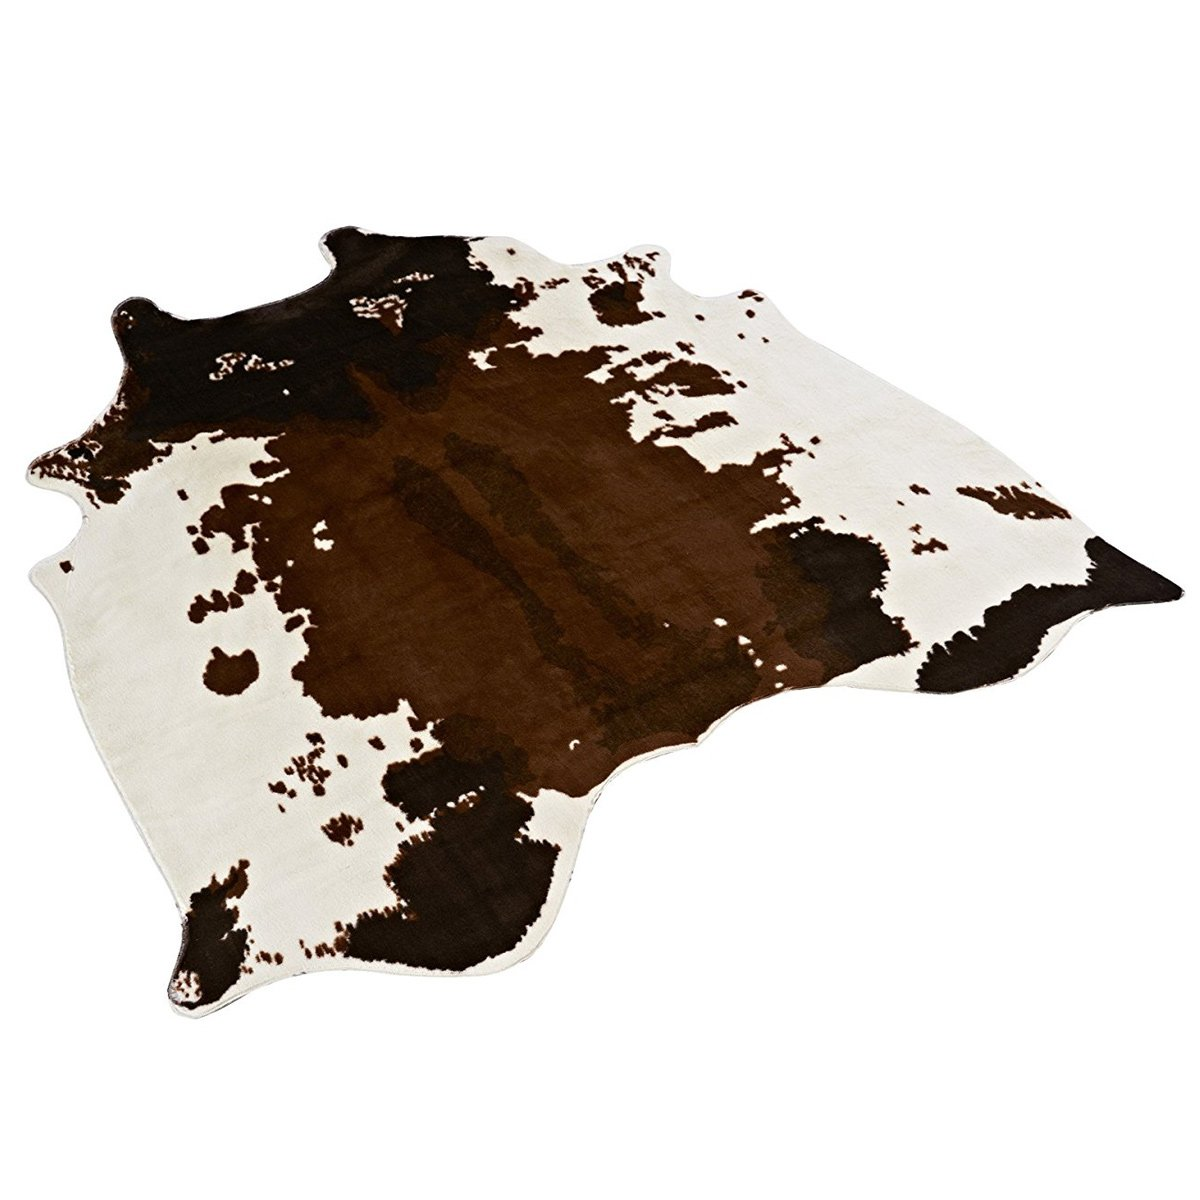 MustHome Soft Faux Cowhide Rug 4.5x4.4 Feet Cow Print Rug Perfect Throw Rug for Living Room/Tile/Lounge Room/Office